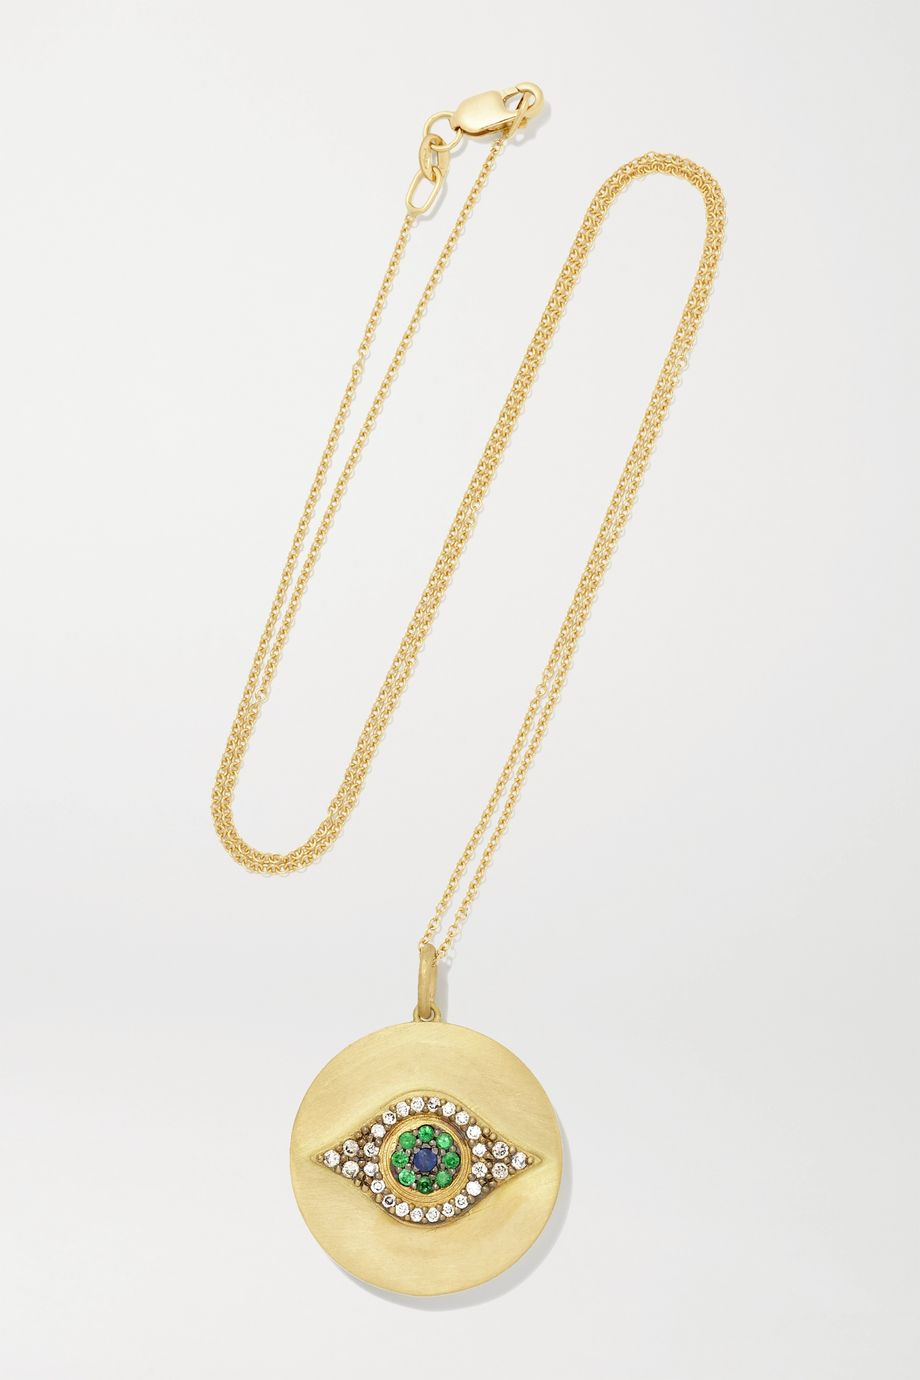 Ileana Makri Golden Dawn 18-karat gold multi-stone necklace